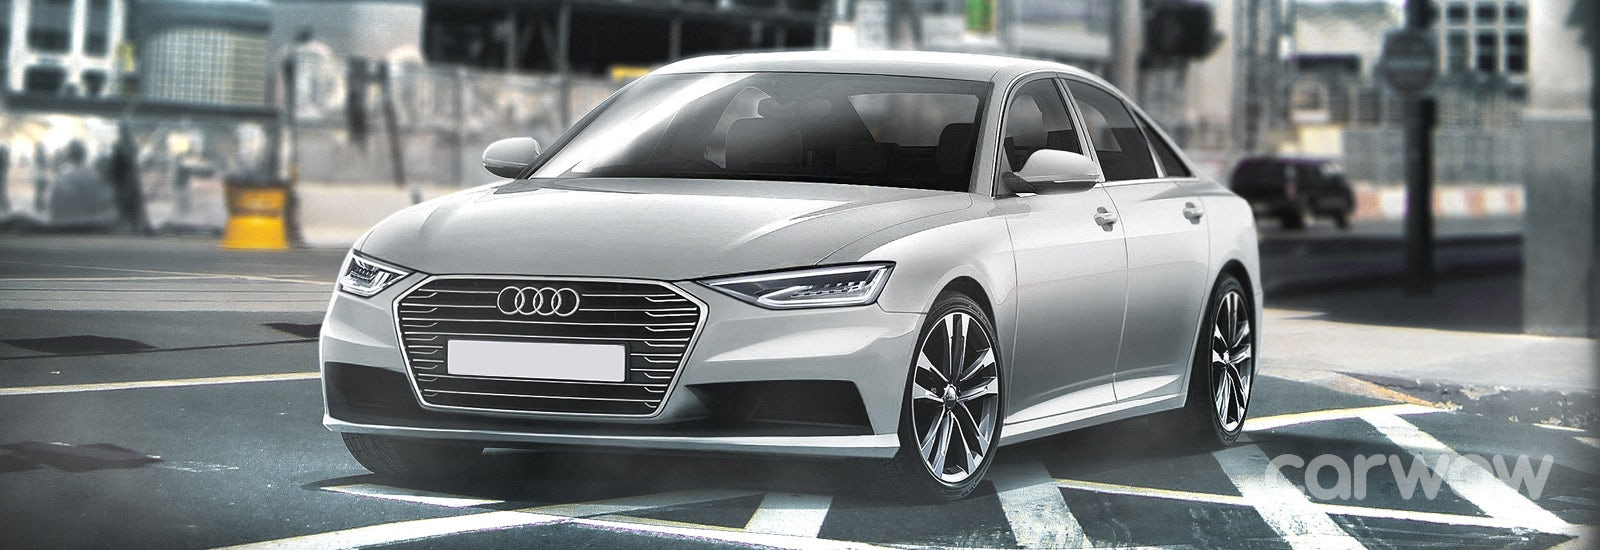 2019 audi a6 price specs and release date carwow. Black Bedroom Furniture Sets. Home Design Ideas